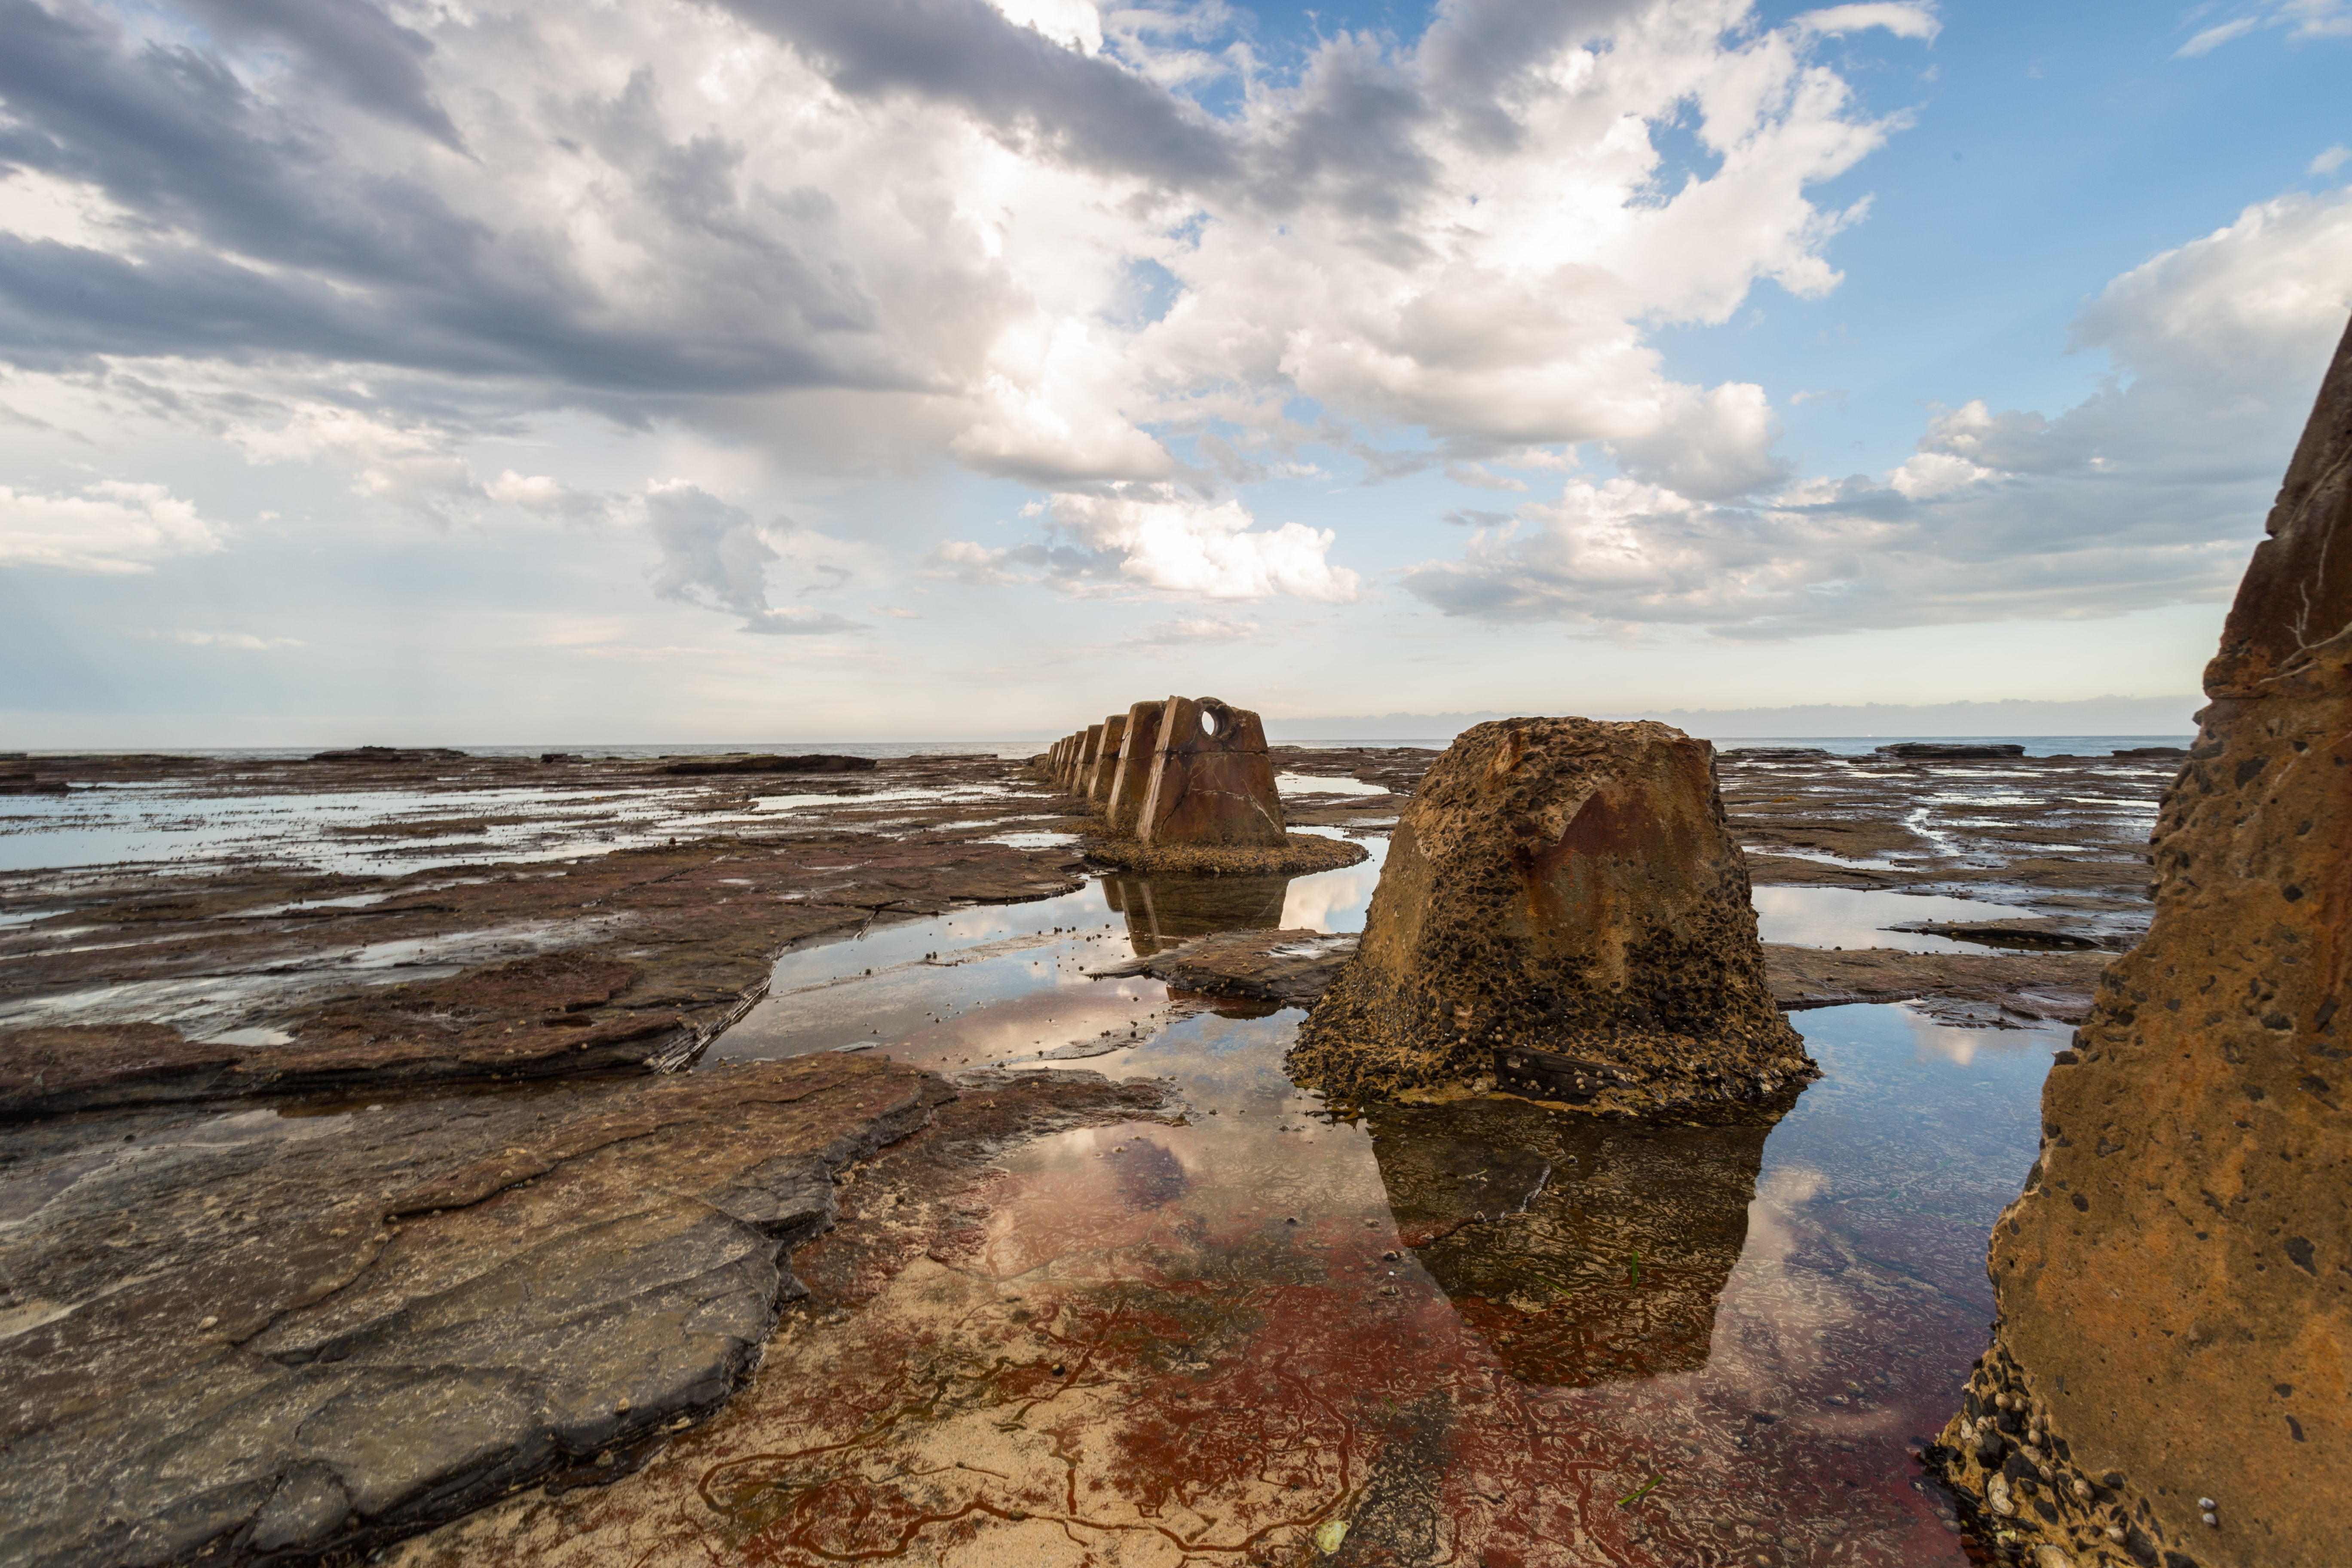 brown rock formation surrounded with water